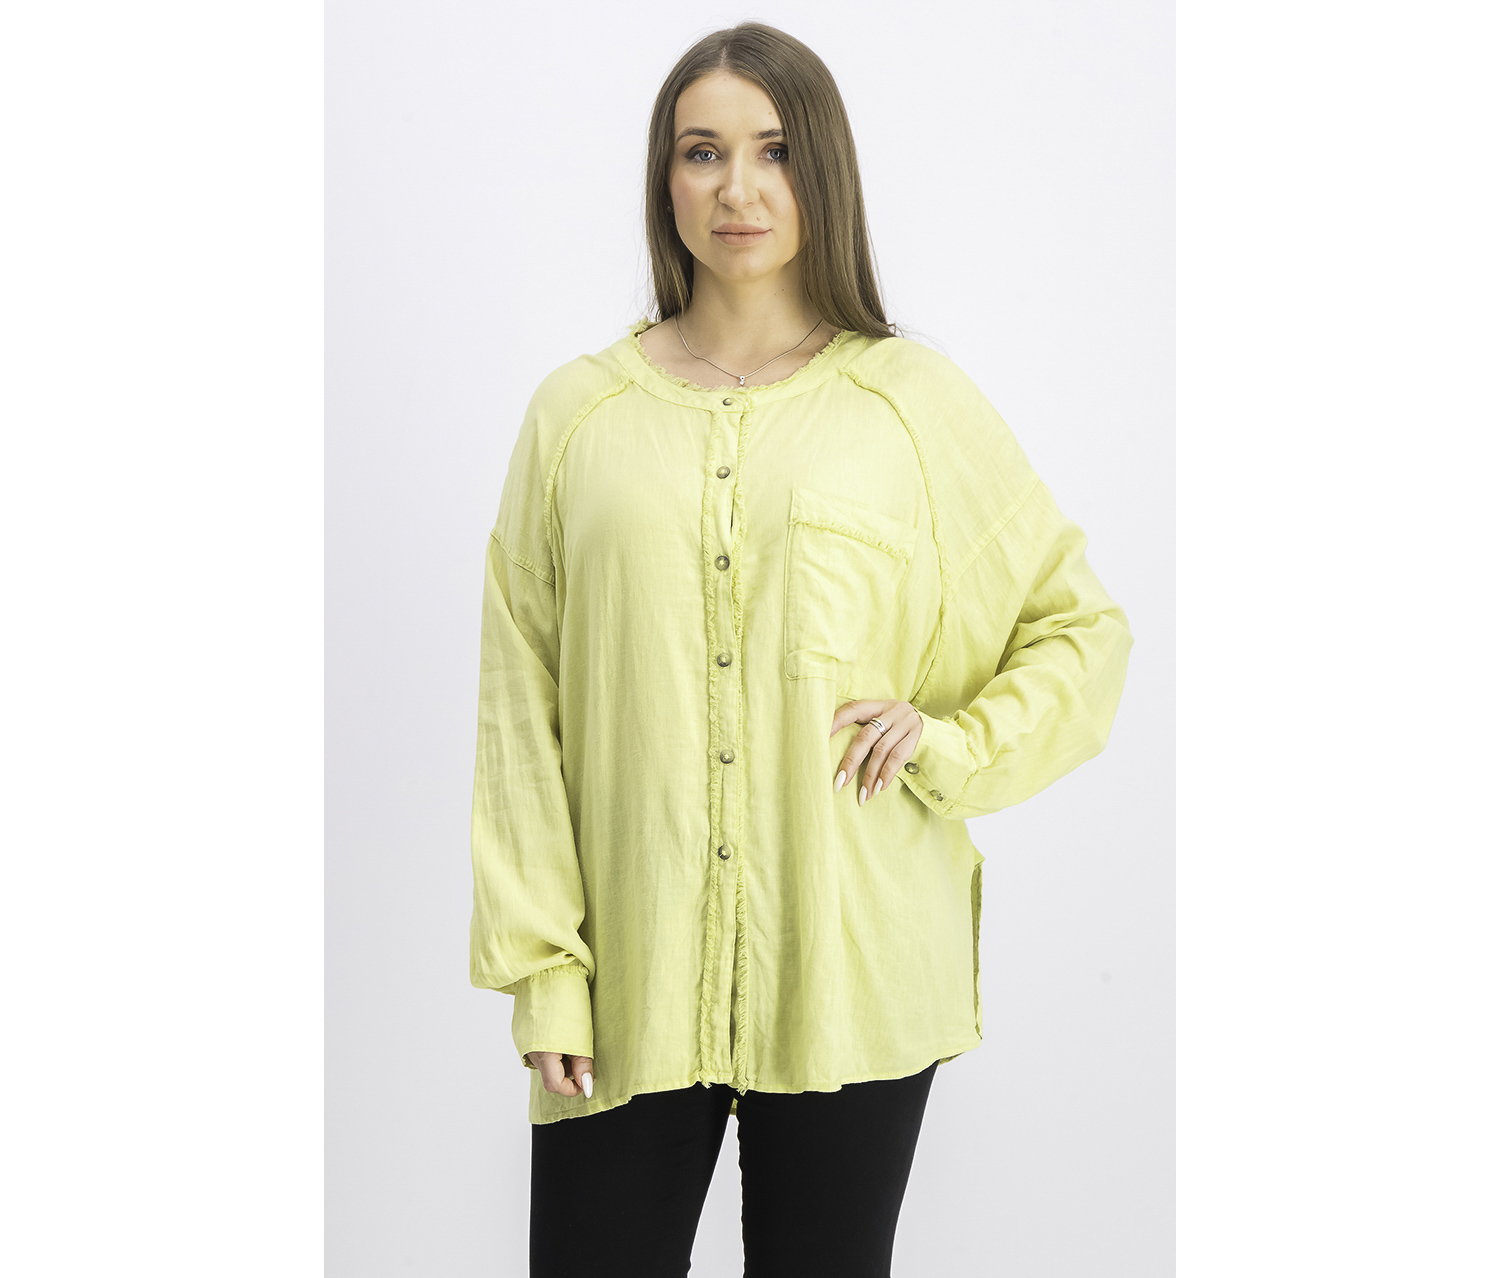 Women's 3/4 Sleeve Collared Button Up Top, New Pear